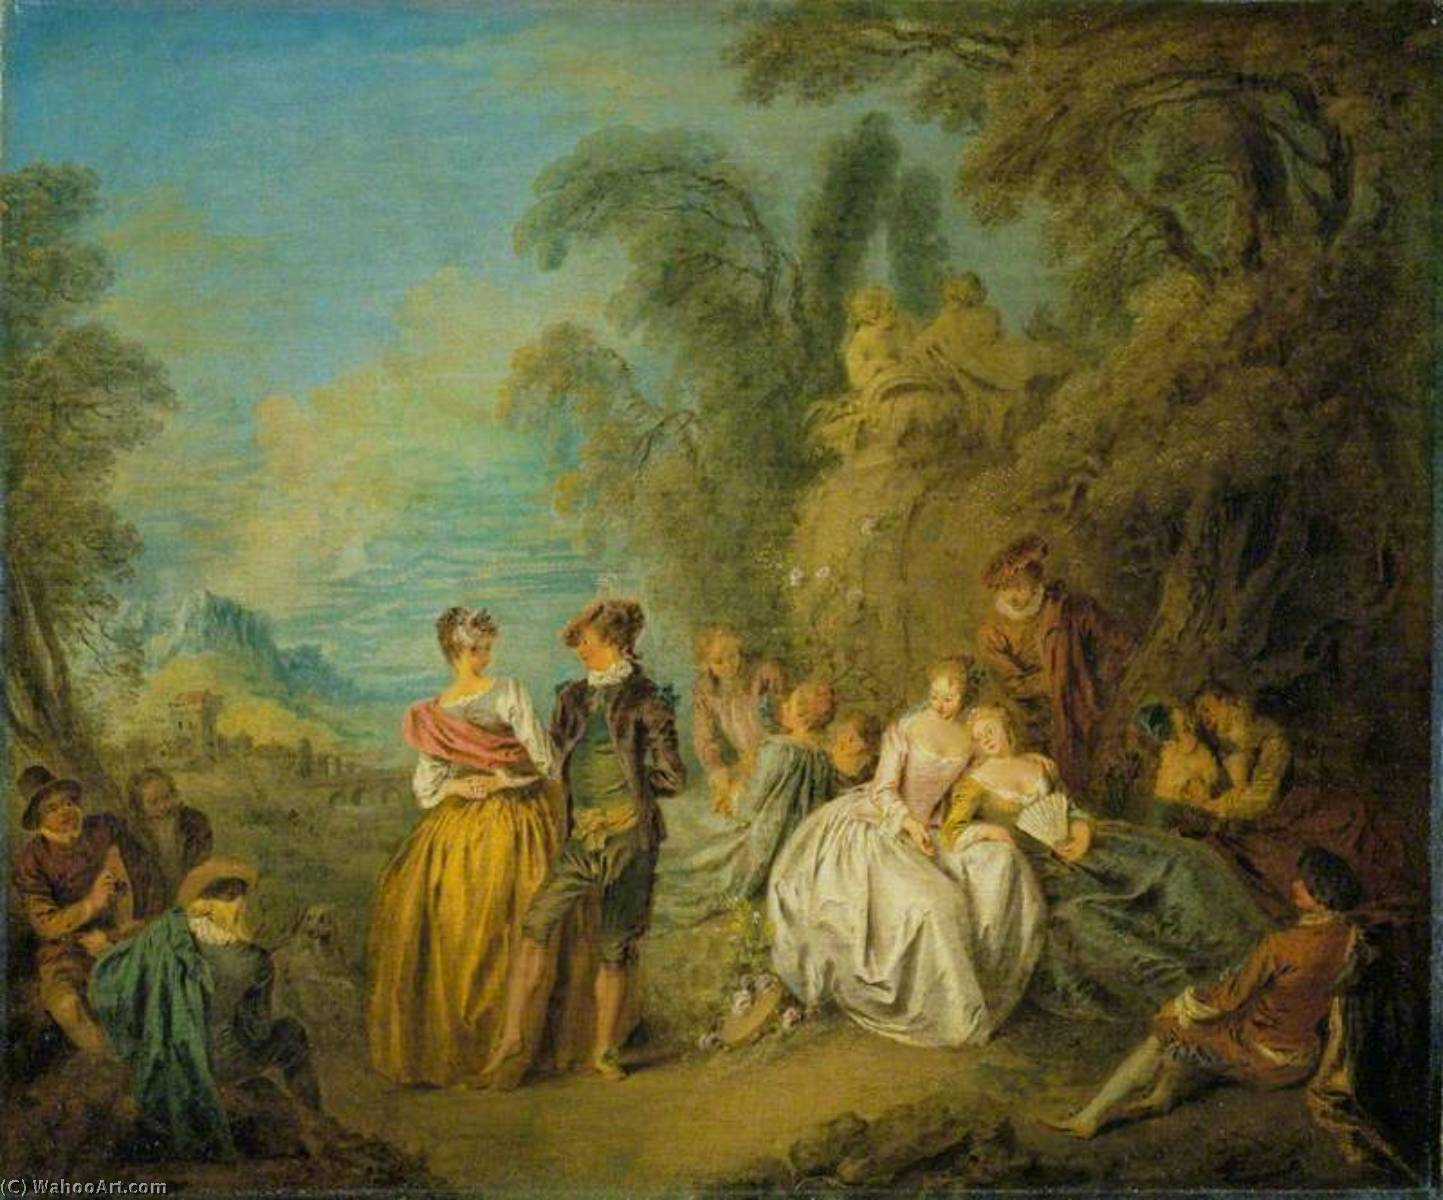 the life and works of jean baptiste pater View jean baptiste joseph pater biographical information, artworks upcoming at auction, and sale prices from our price archives.